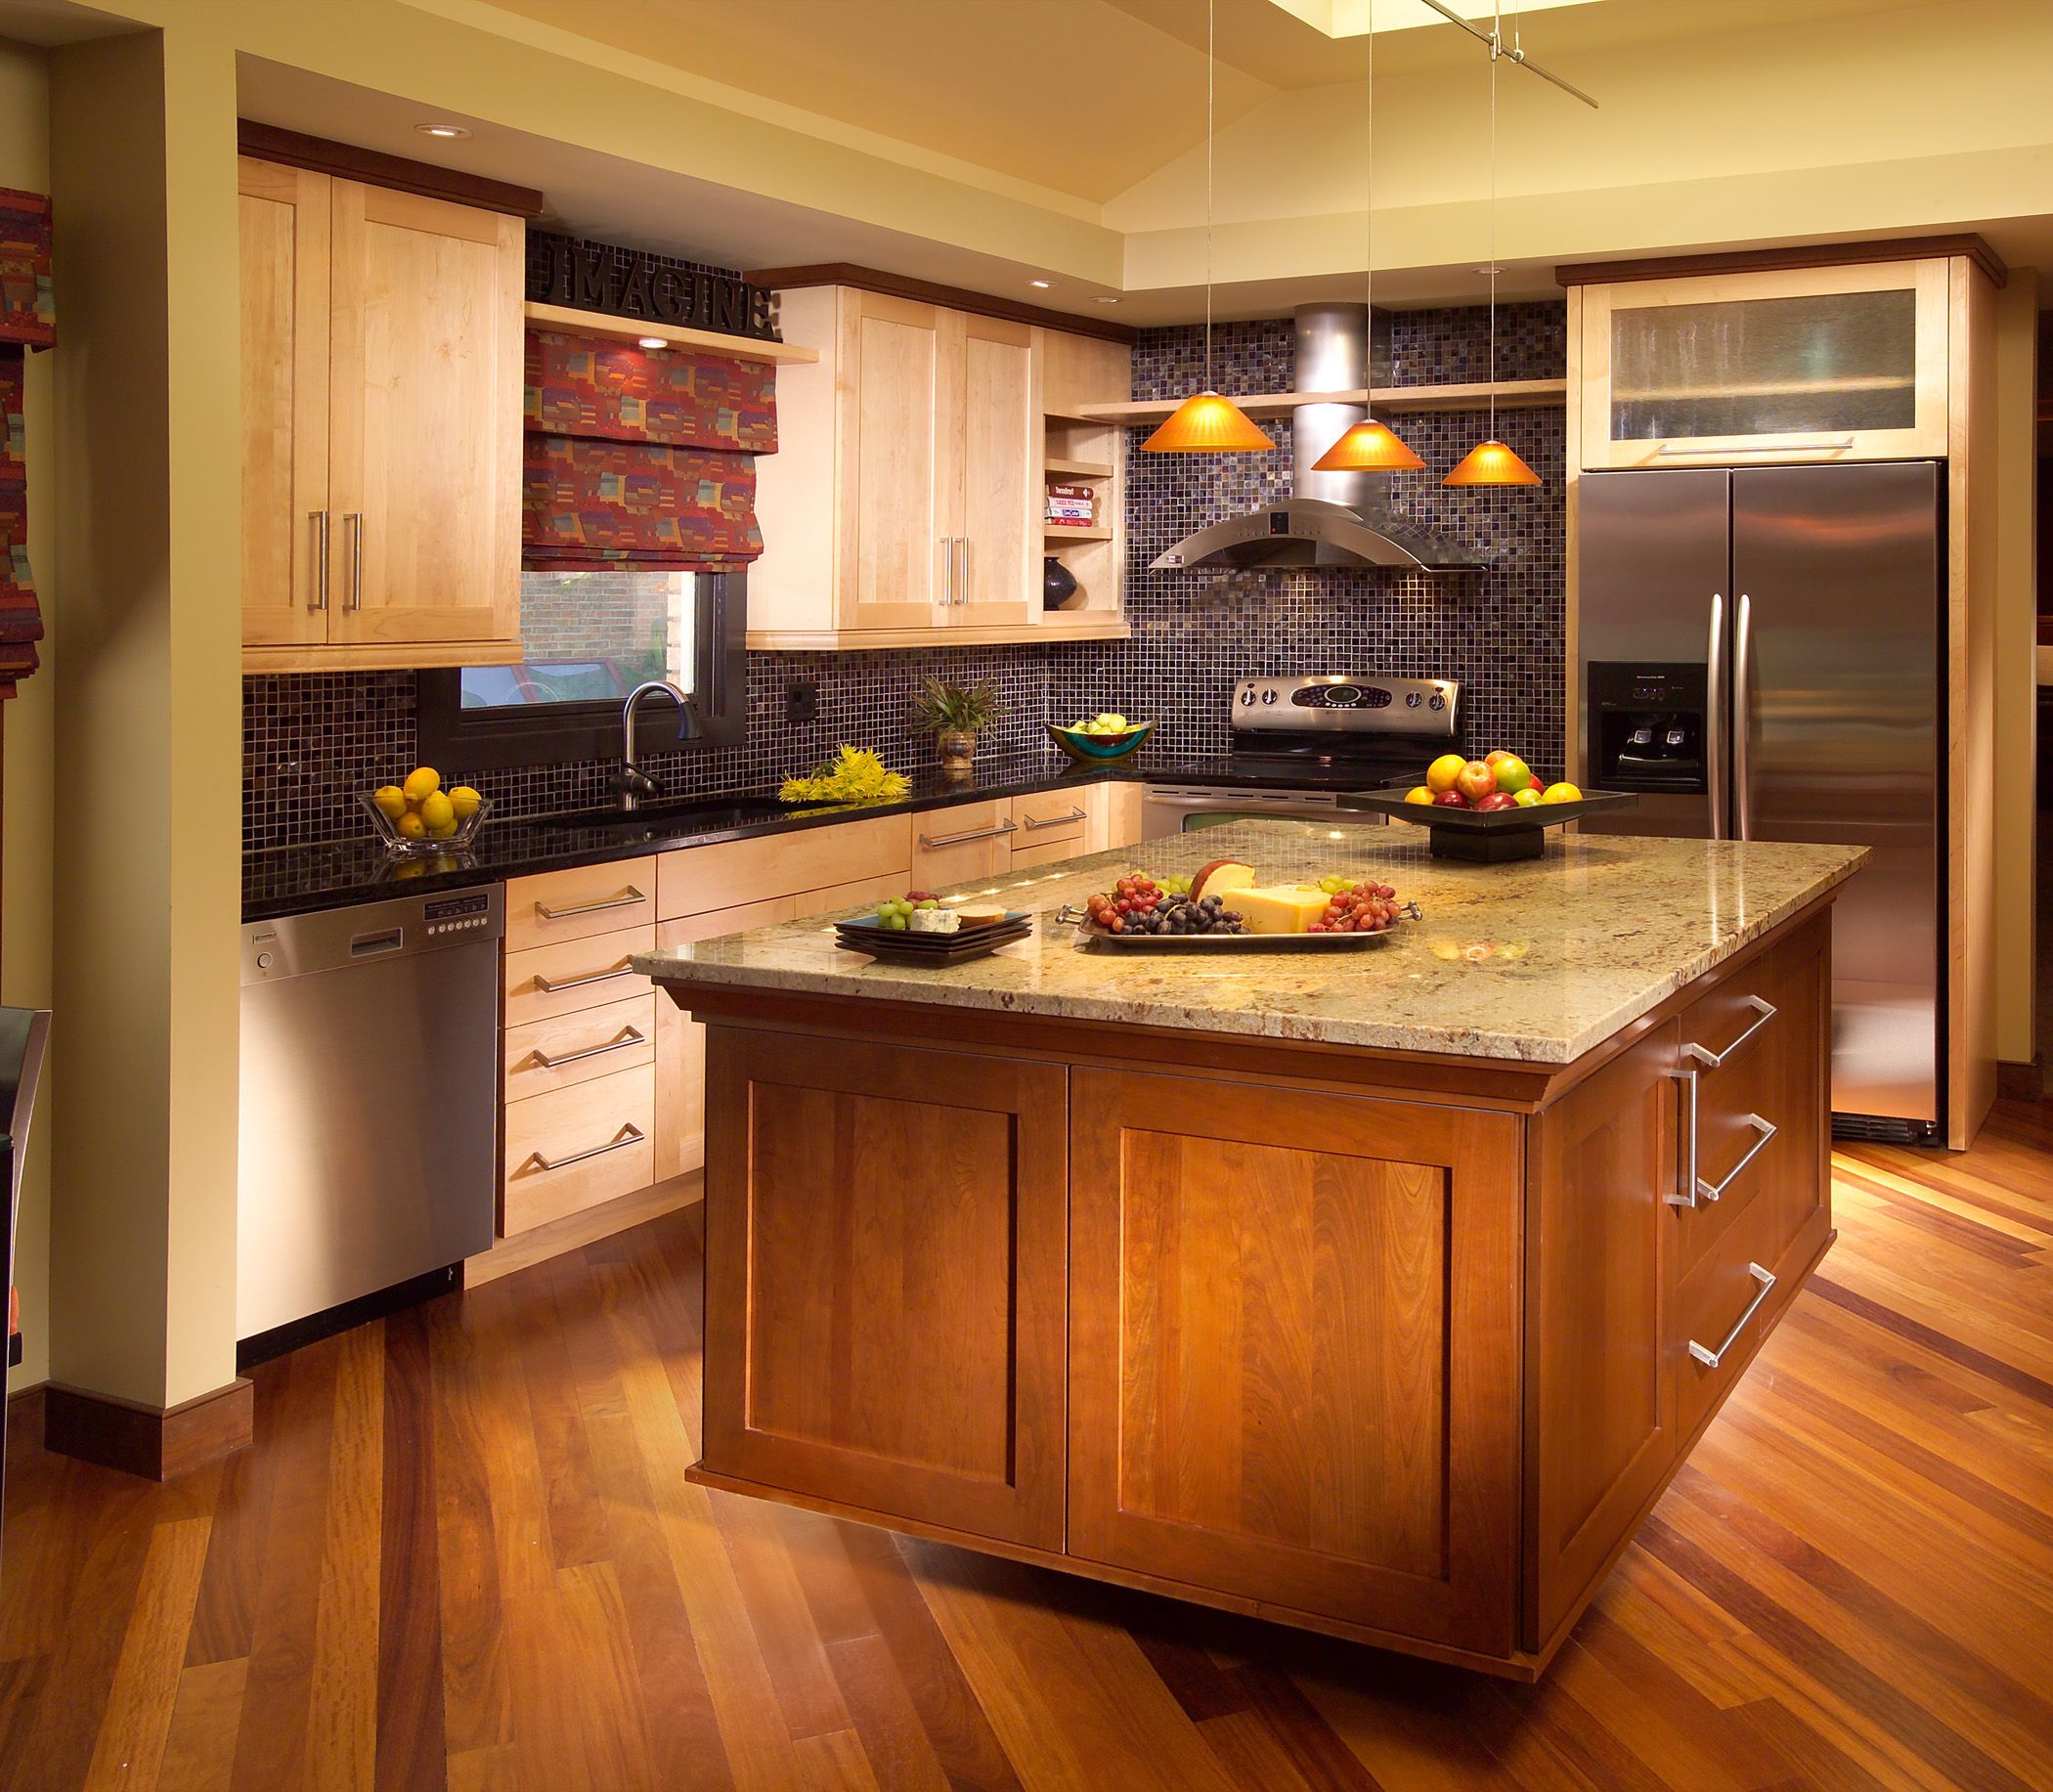 Kitchen Cabinets And Countertops Cost: Custom Wood Products #kitchenisland #cabinets